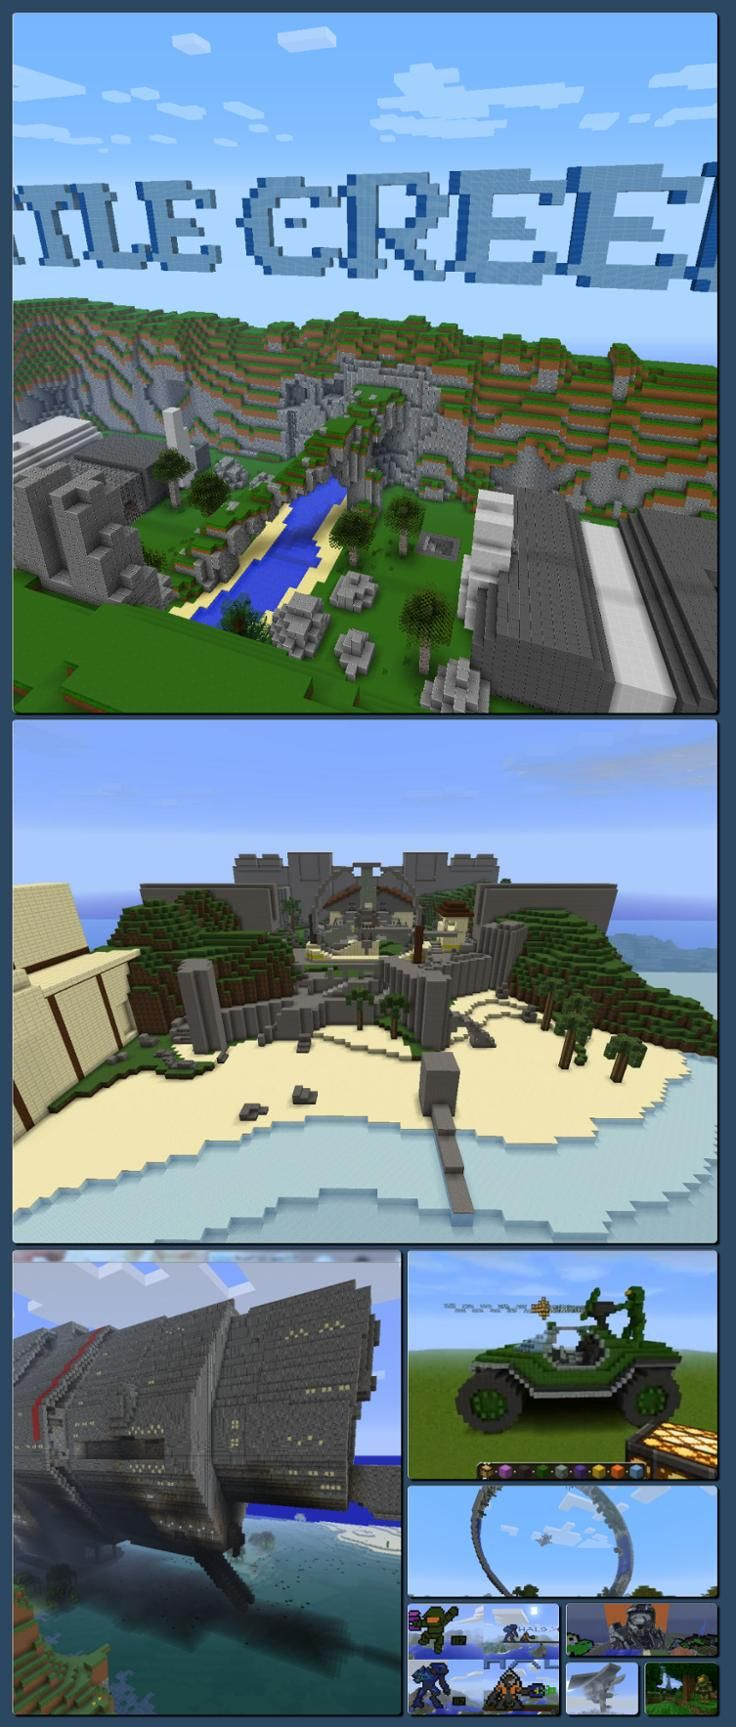 10 Impressive Halo-Inspired Minecraft Builds - IGN [Collage made with one click using http://pagecollage.com] #pagecollage